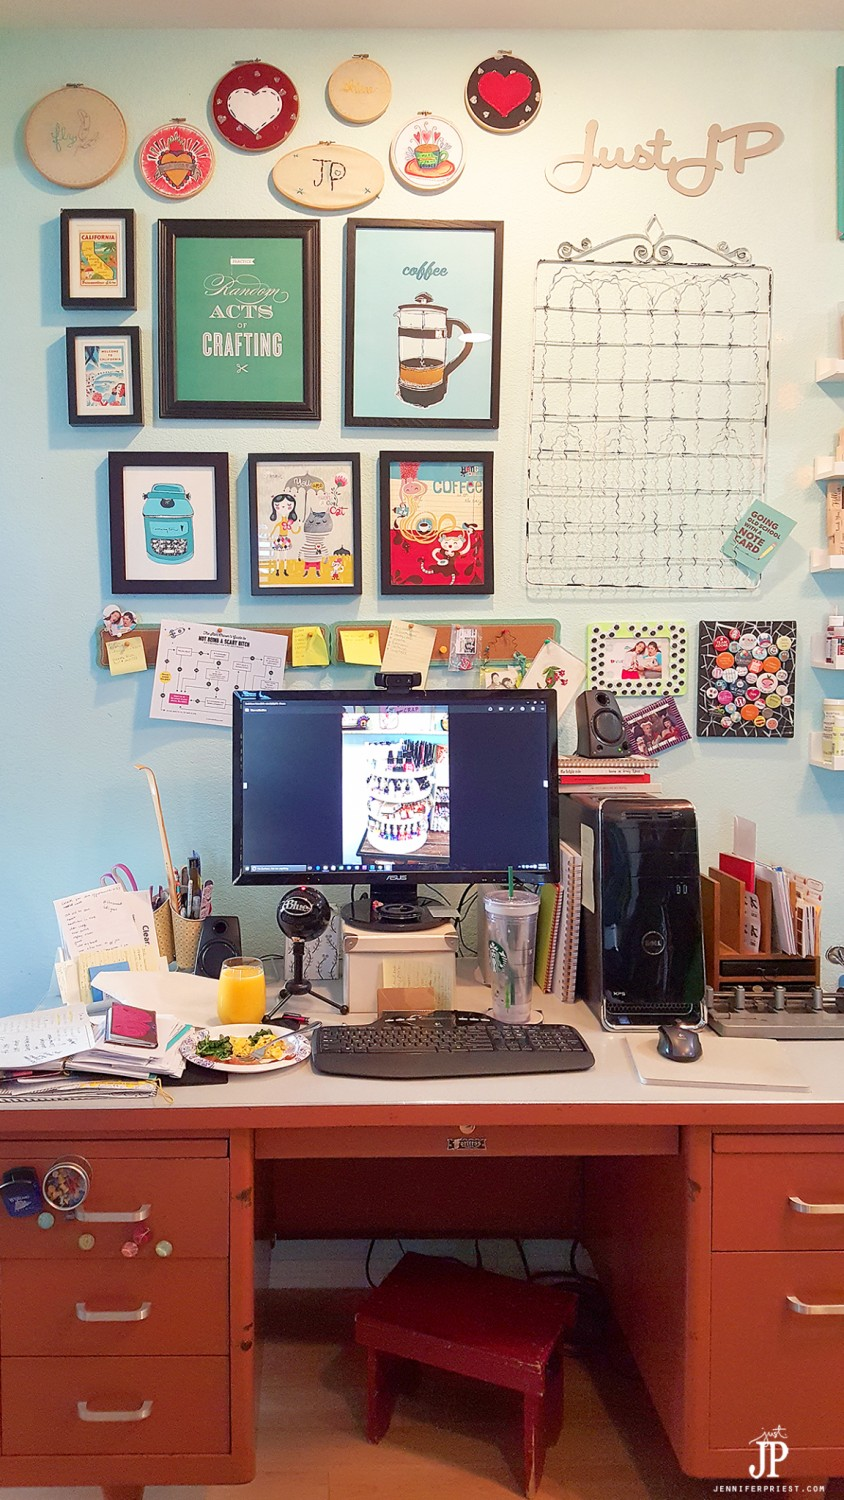 Use a vintage teacher desk for computer and crafts in a craft studio. CRAFT room tour with TONS of amazing ideas! Ikea craft storage, library card catalogs, apothecary cabinets and great shelves for organizing paint and organizing stamps. Harbor Freight spinner for inks and so many more ideas. VIDEO TOUR! 2016 Craft Room Tour by Jennifer Priest